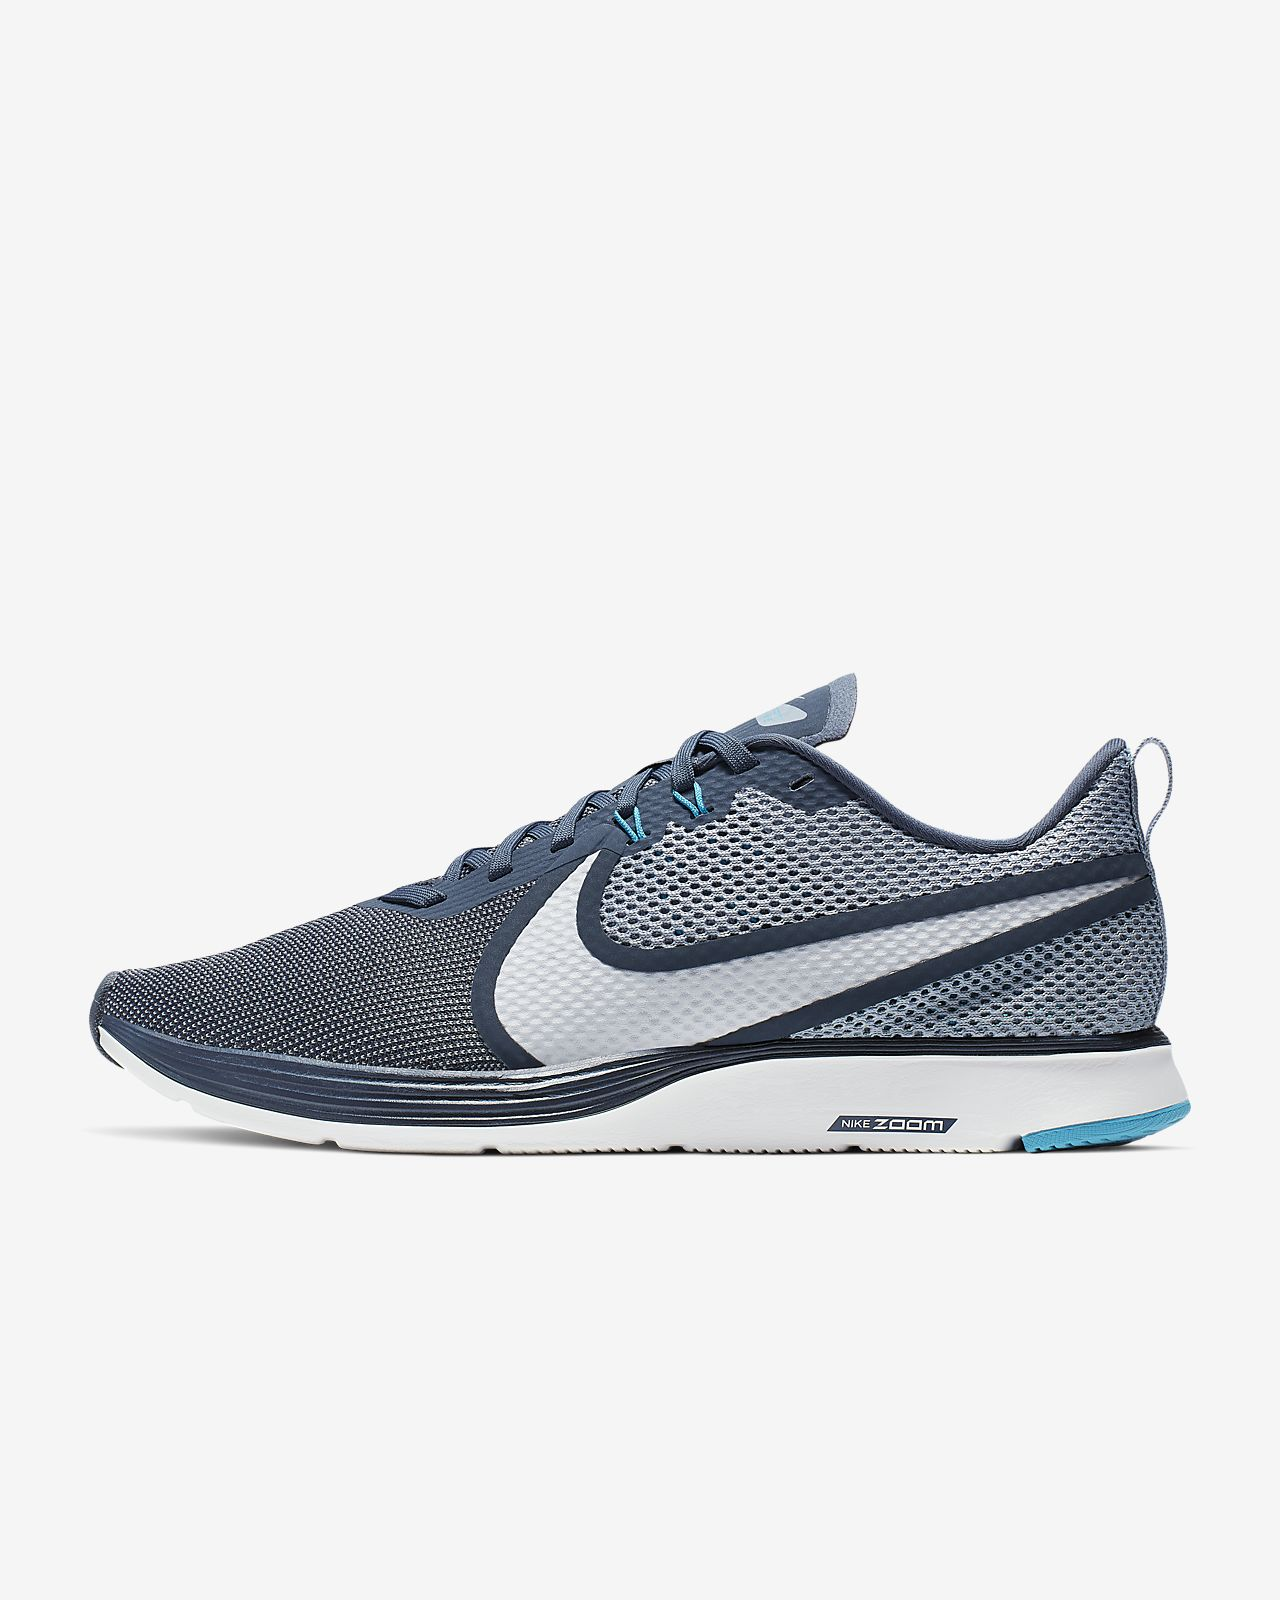 Chaussure de running Nike Zoom Strike 2 pour Homme